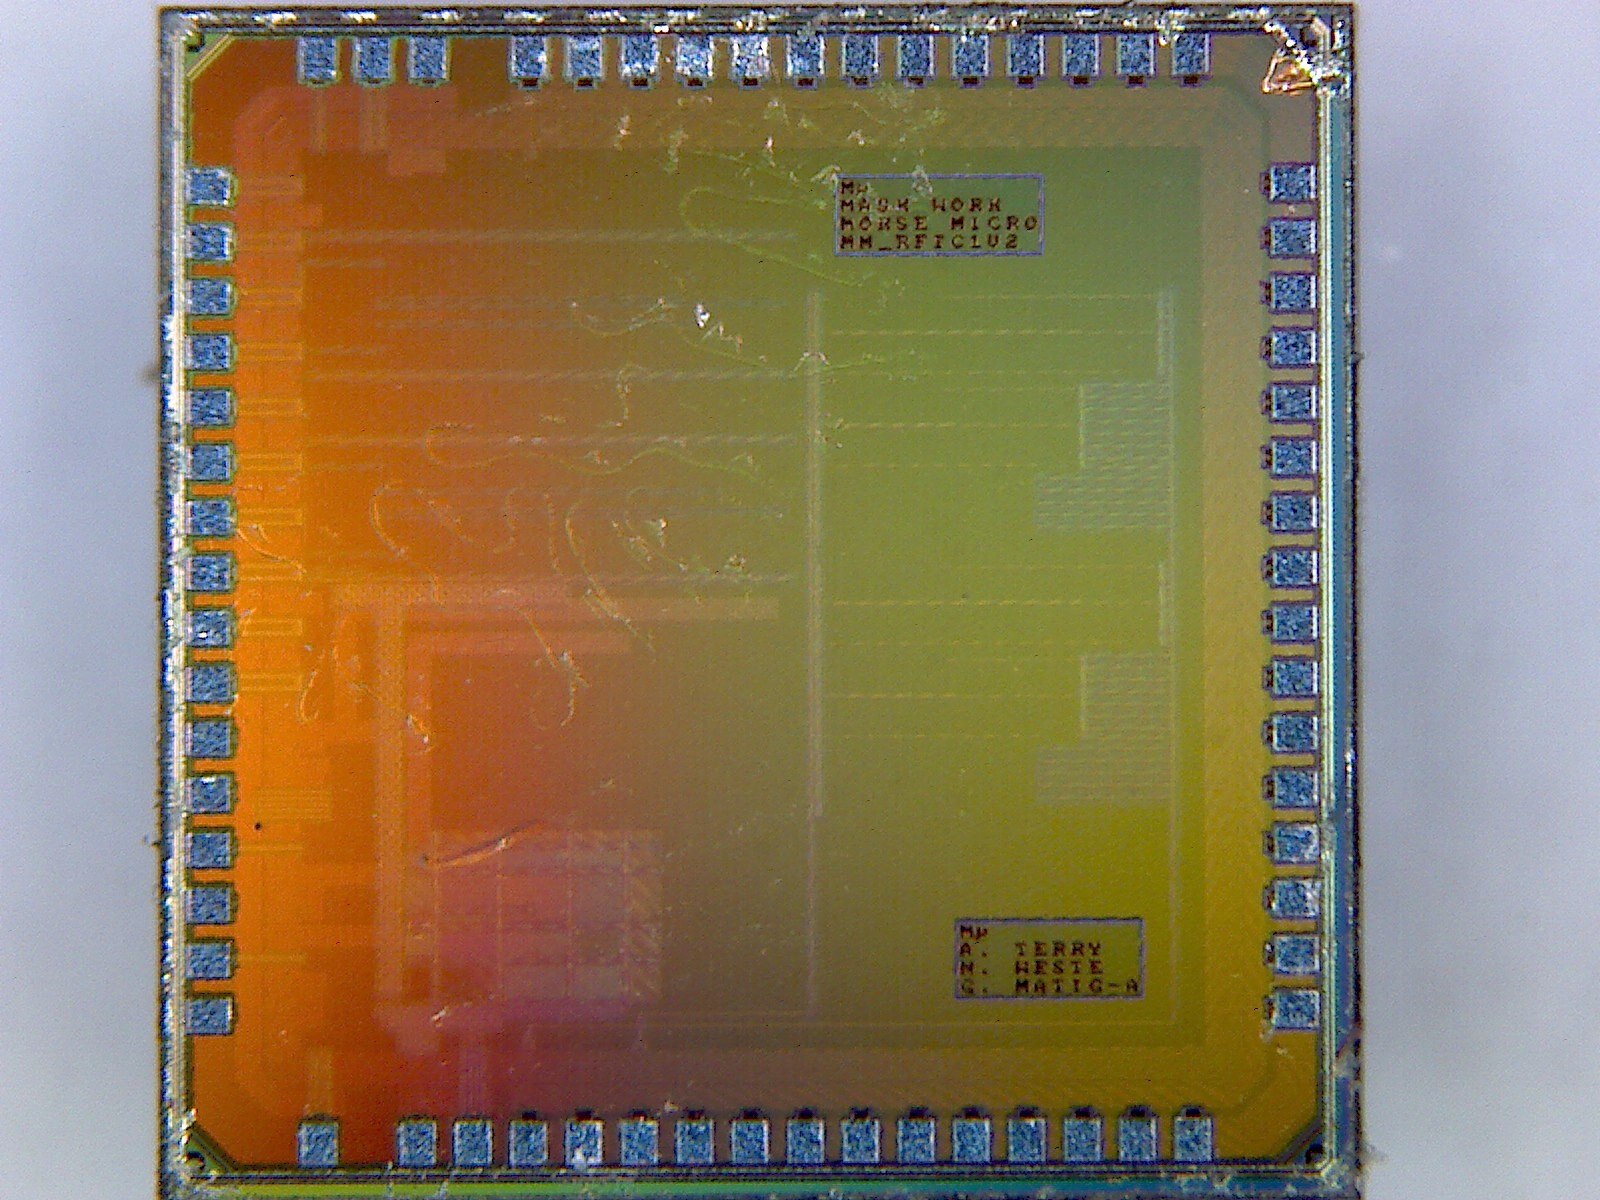 Microscope image of Morse Micro's first chip